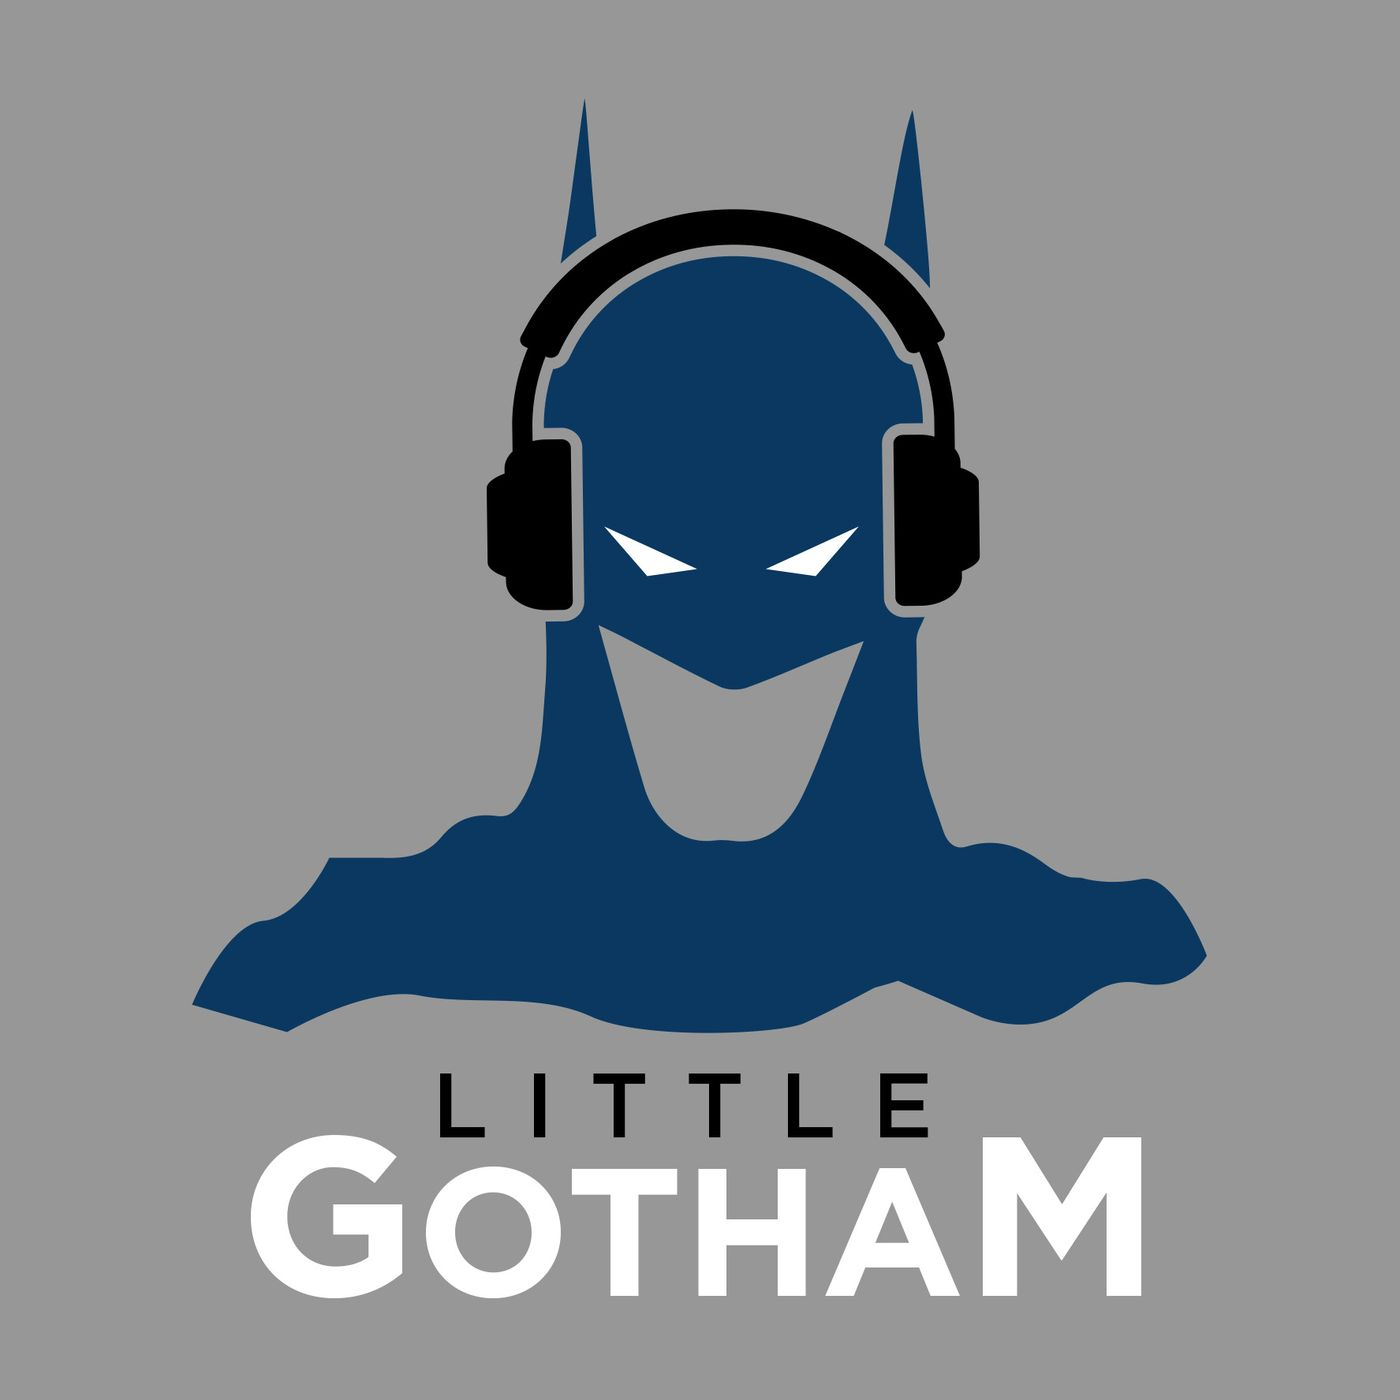 Little Gotham